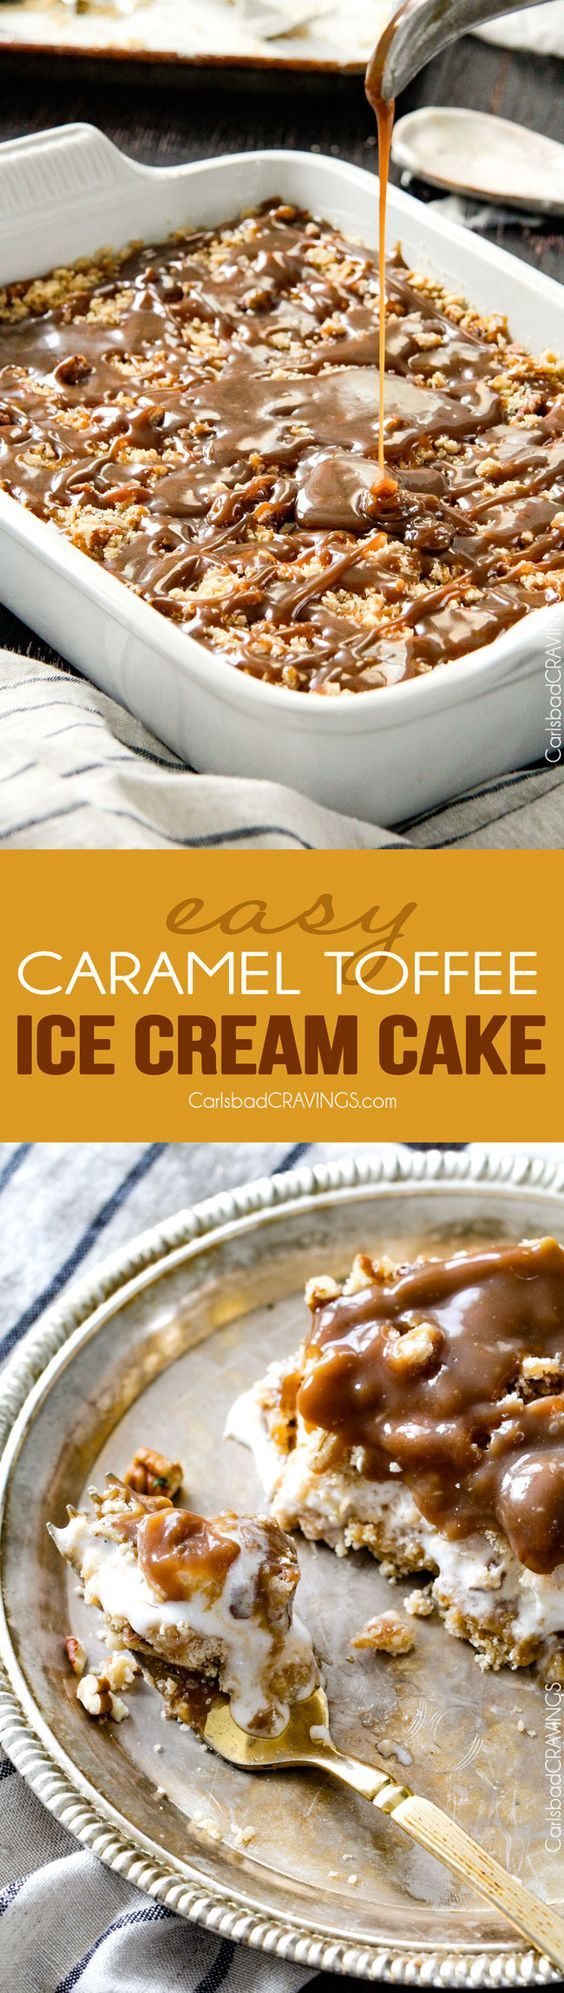 Toffee Caramel Ice Cream Cake - so easy! The Pecan cookie crumble and the caramel sauce is out of this world! Perfect make ahead dessert!